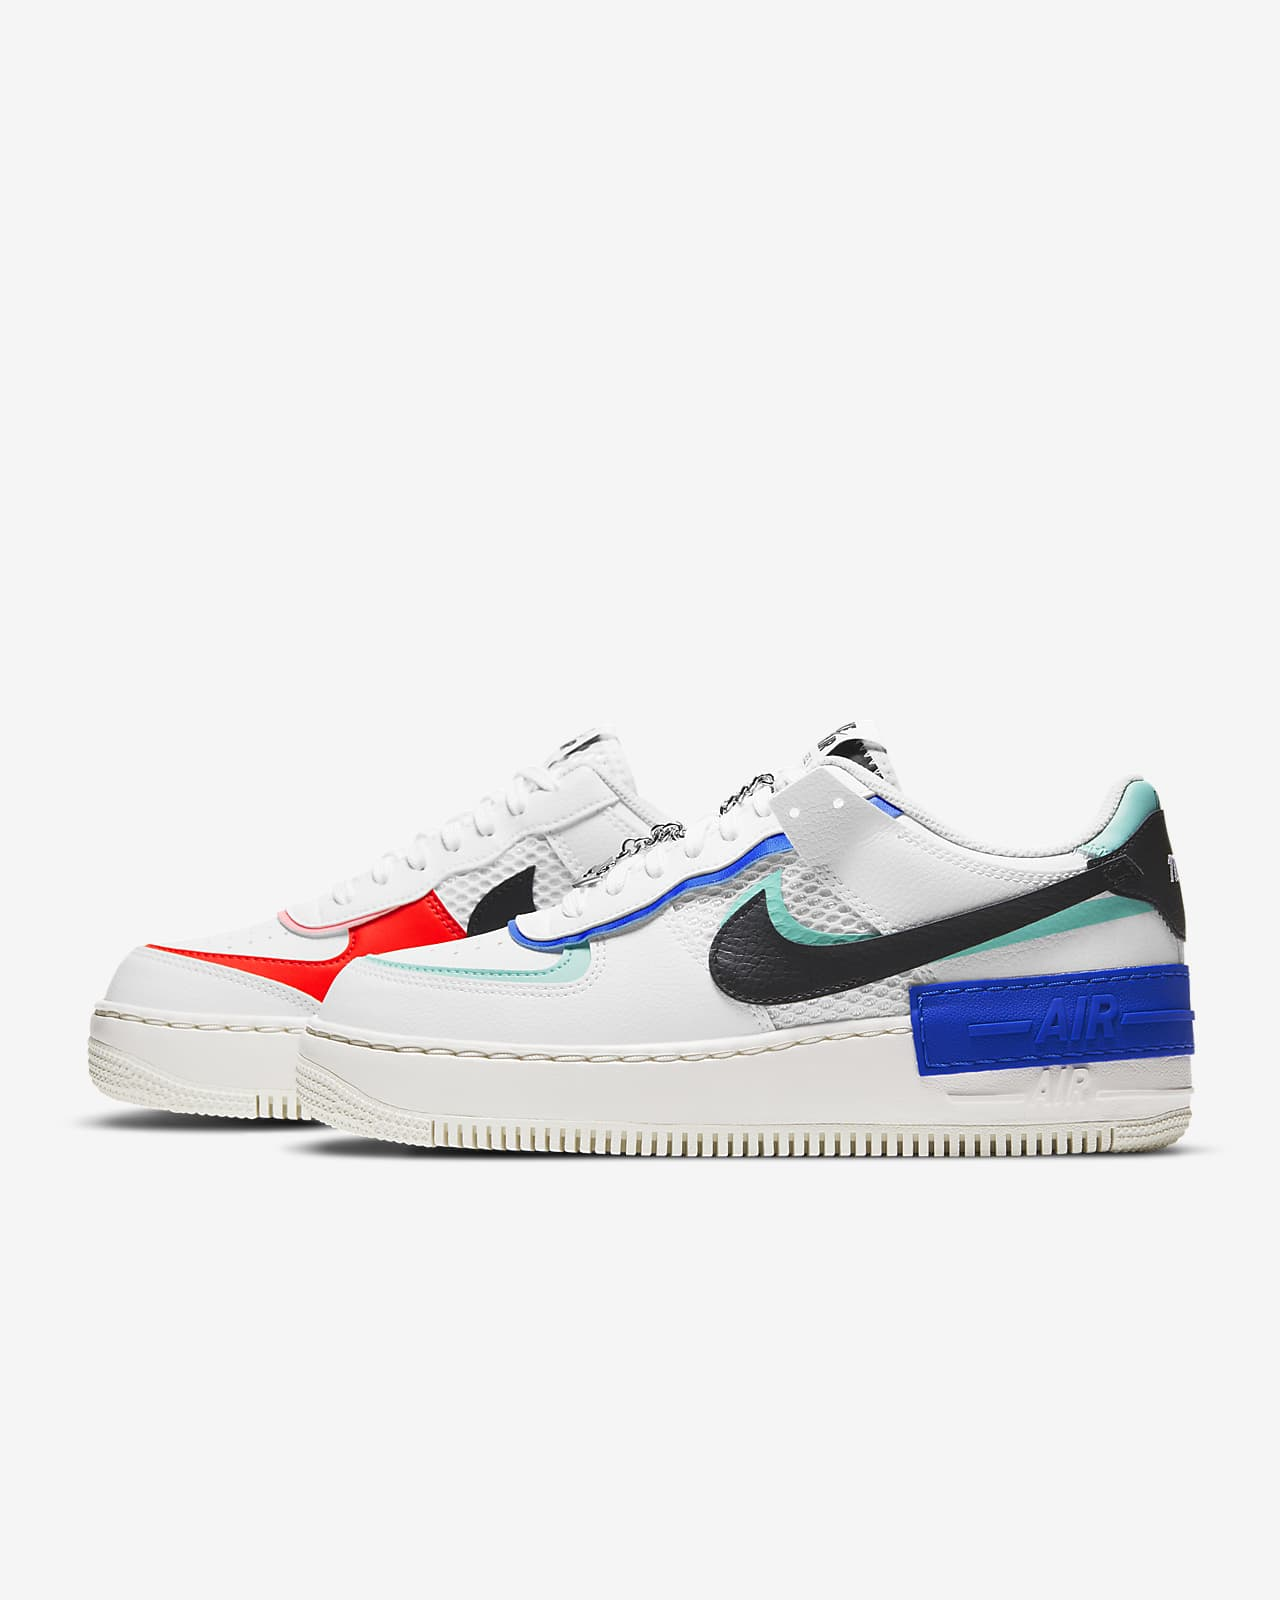 Nike Air Force 1 Shadow Women S Shoe Nike Com Price iconic air force 1 design details. nike air force 1 shadow women s shoe